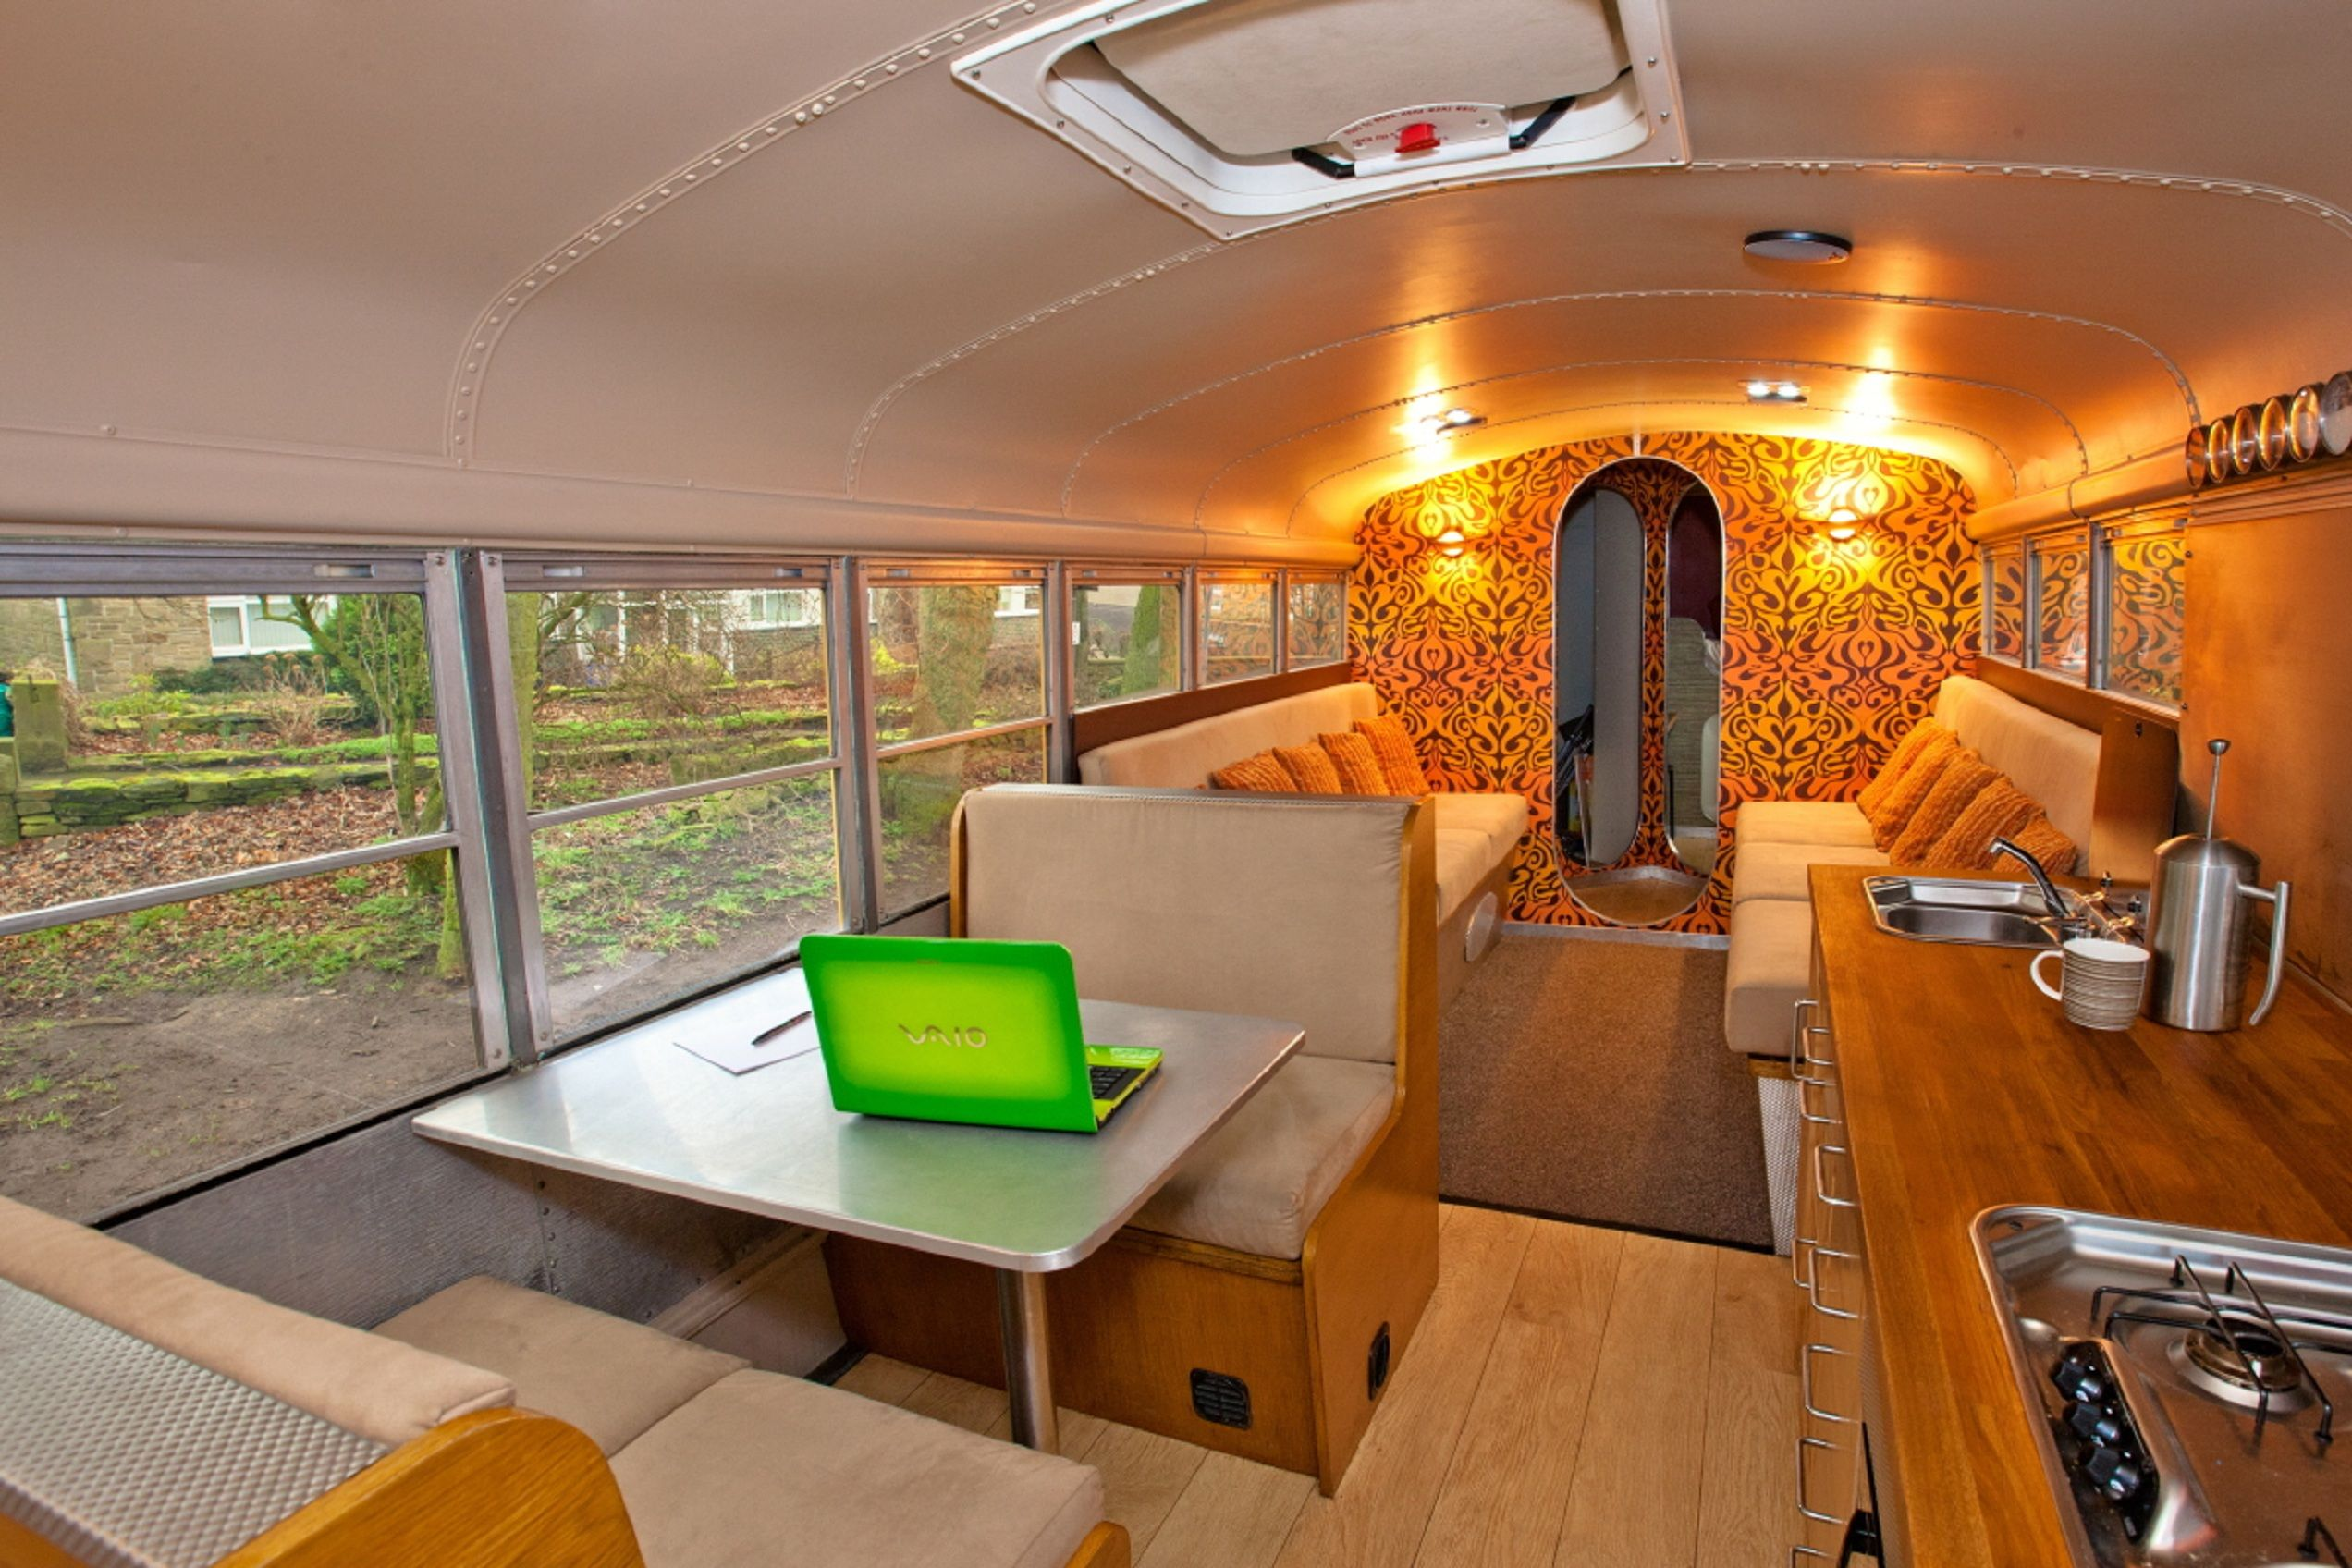 education requirements for interior design - School buses, Buses and Schools on Pinterest